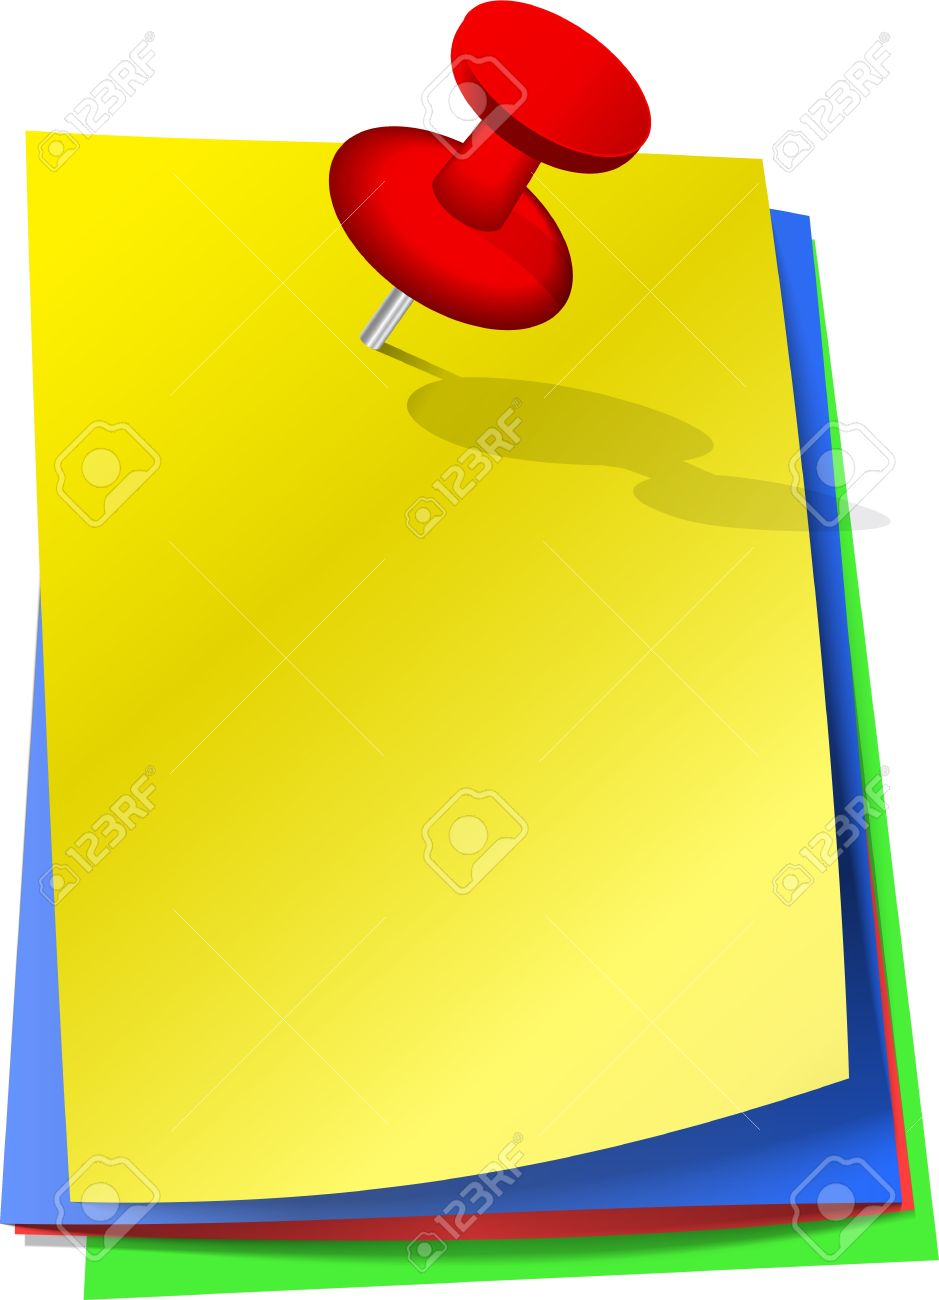 Free vector graphic sticky note note info paper free image on - Colorful Sticky Notes Attached With Red Pin Stock Vector 15450922